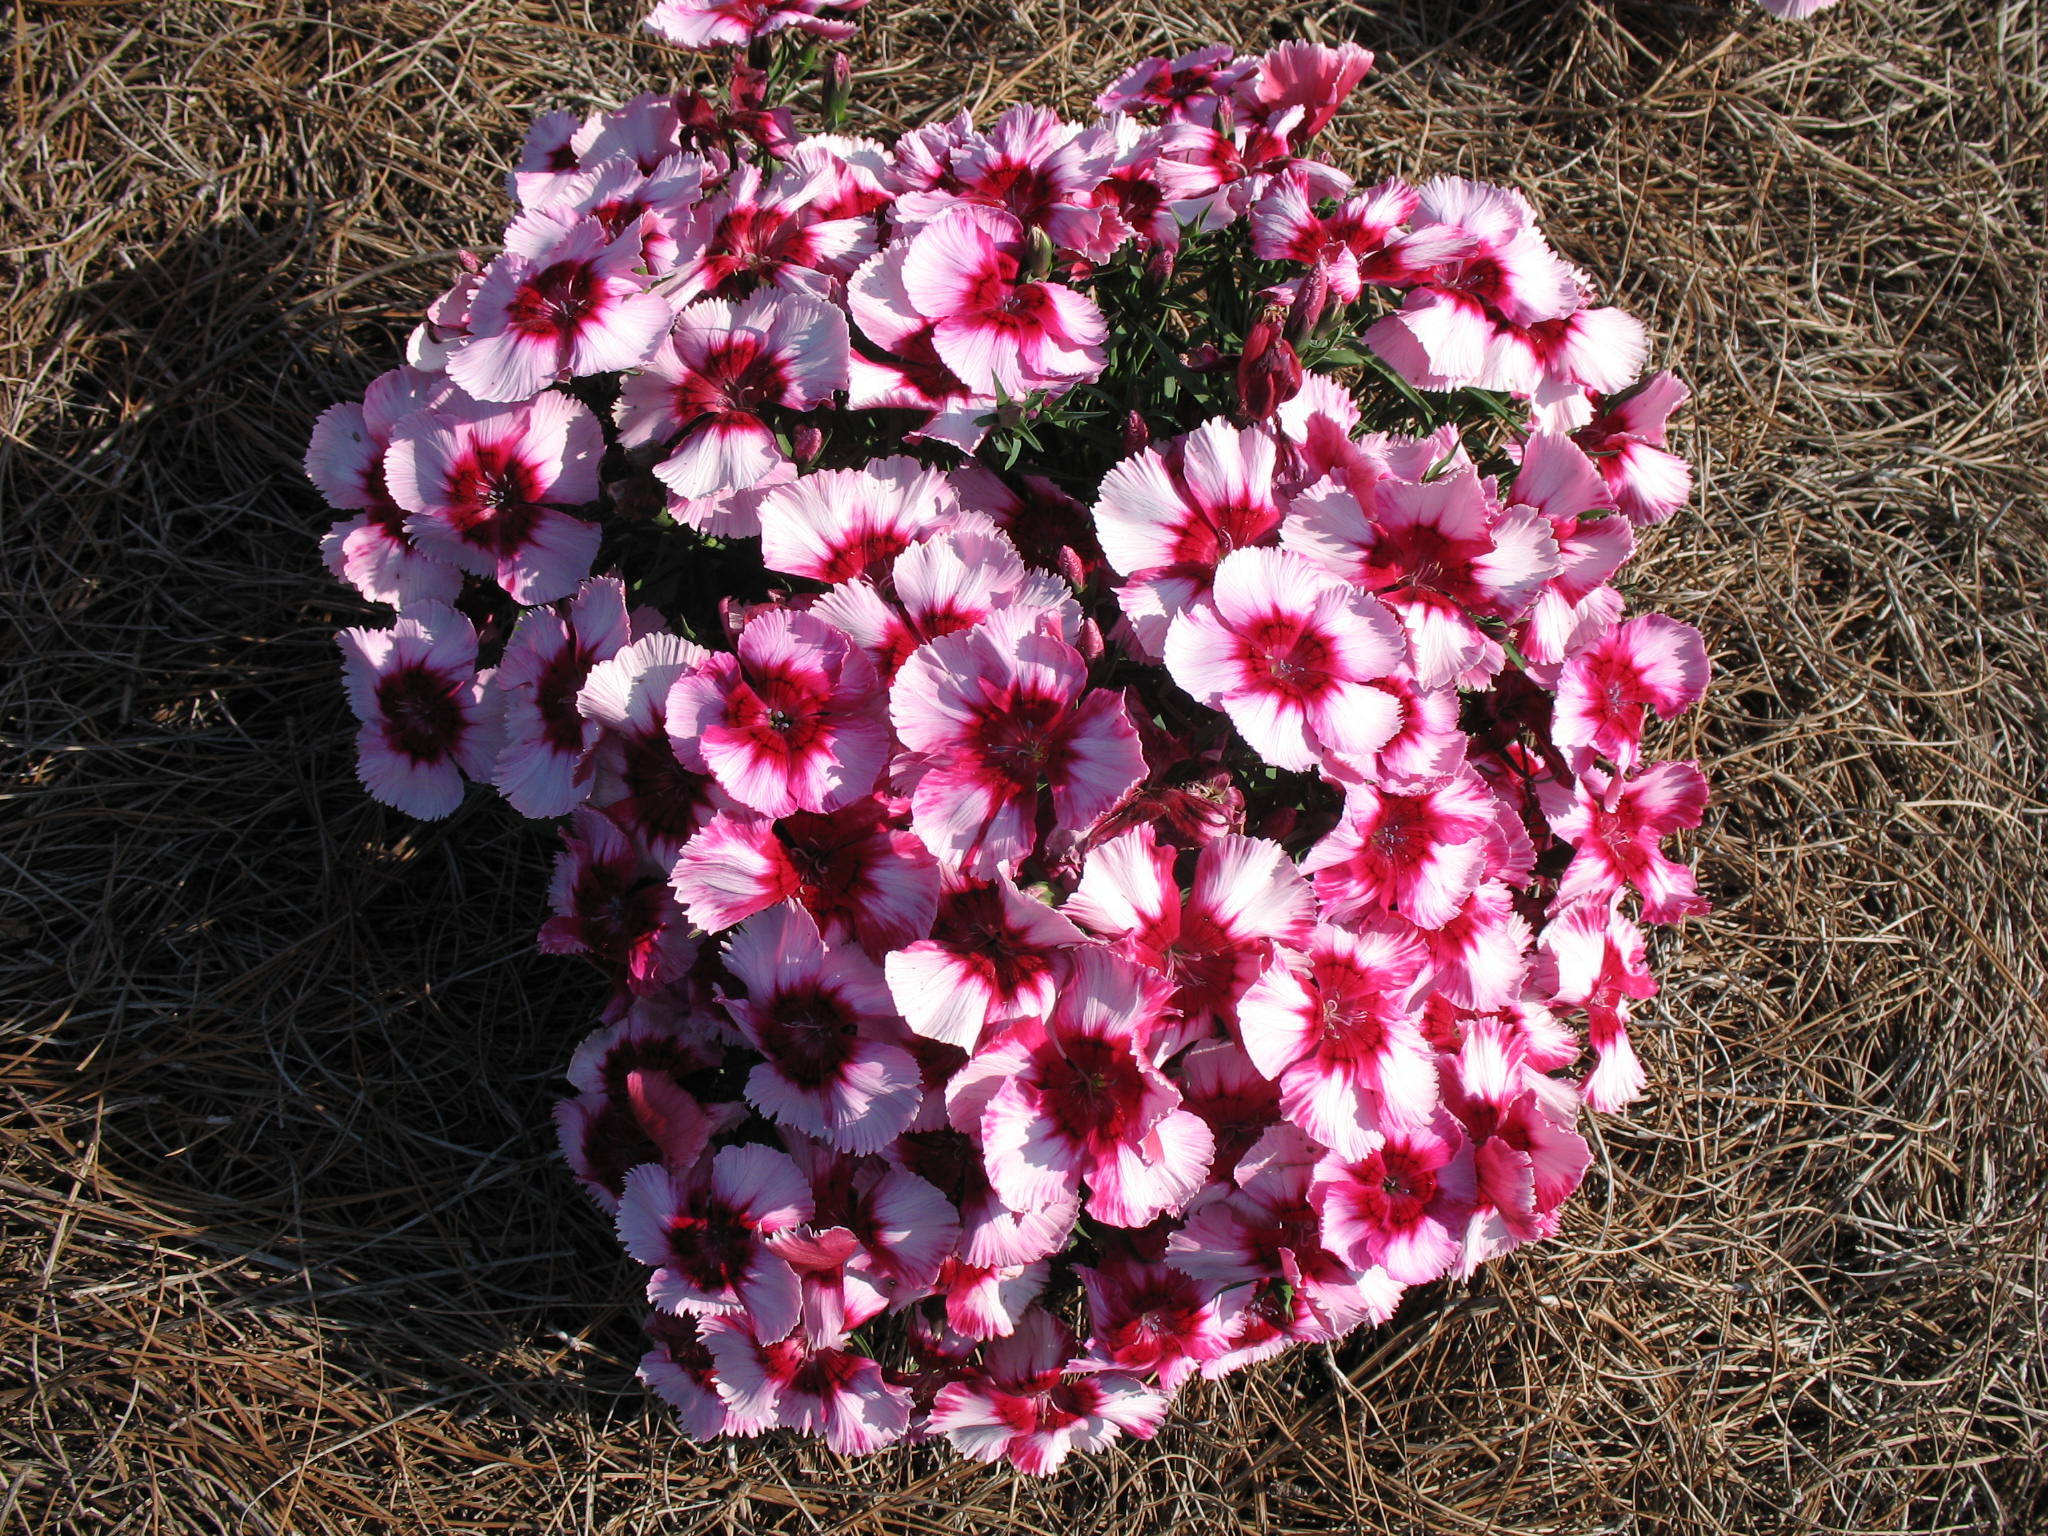 Dianthus 'Corona Cherry Magic' / Dianthus 'Corona Cherry Magic'